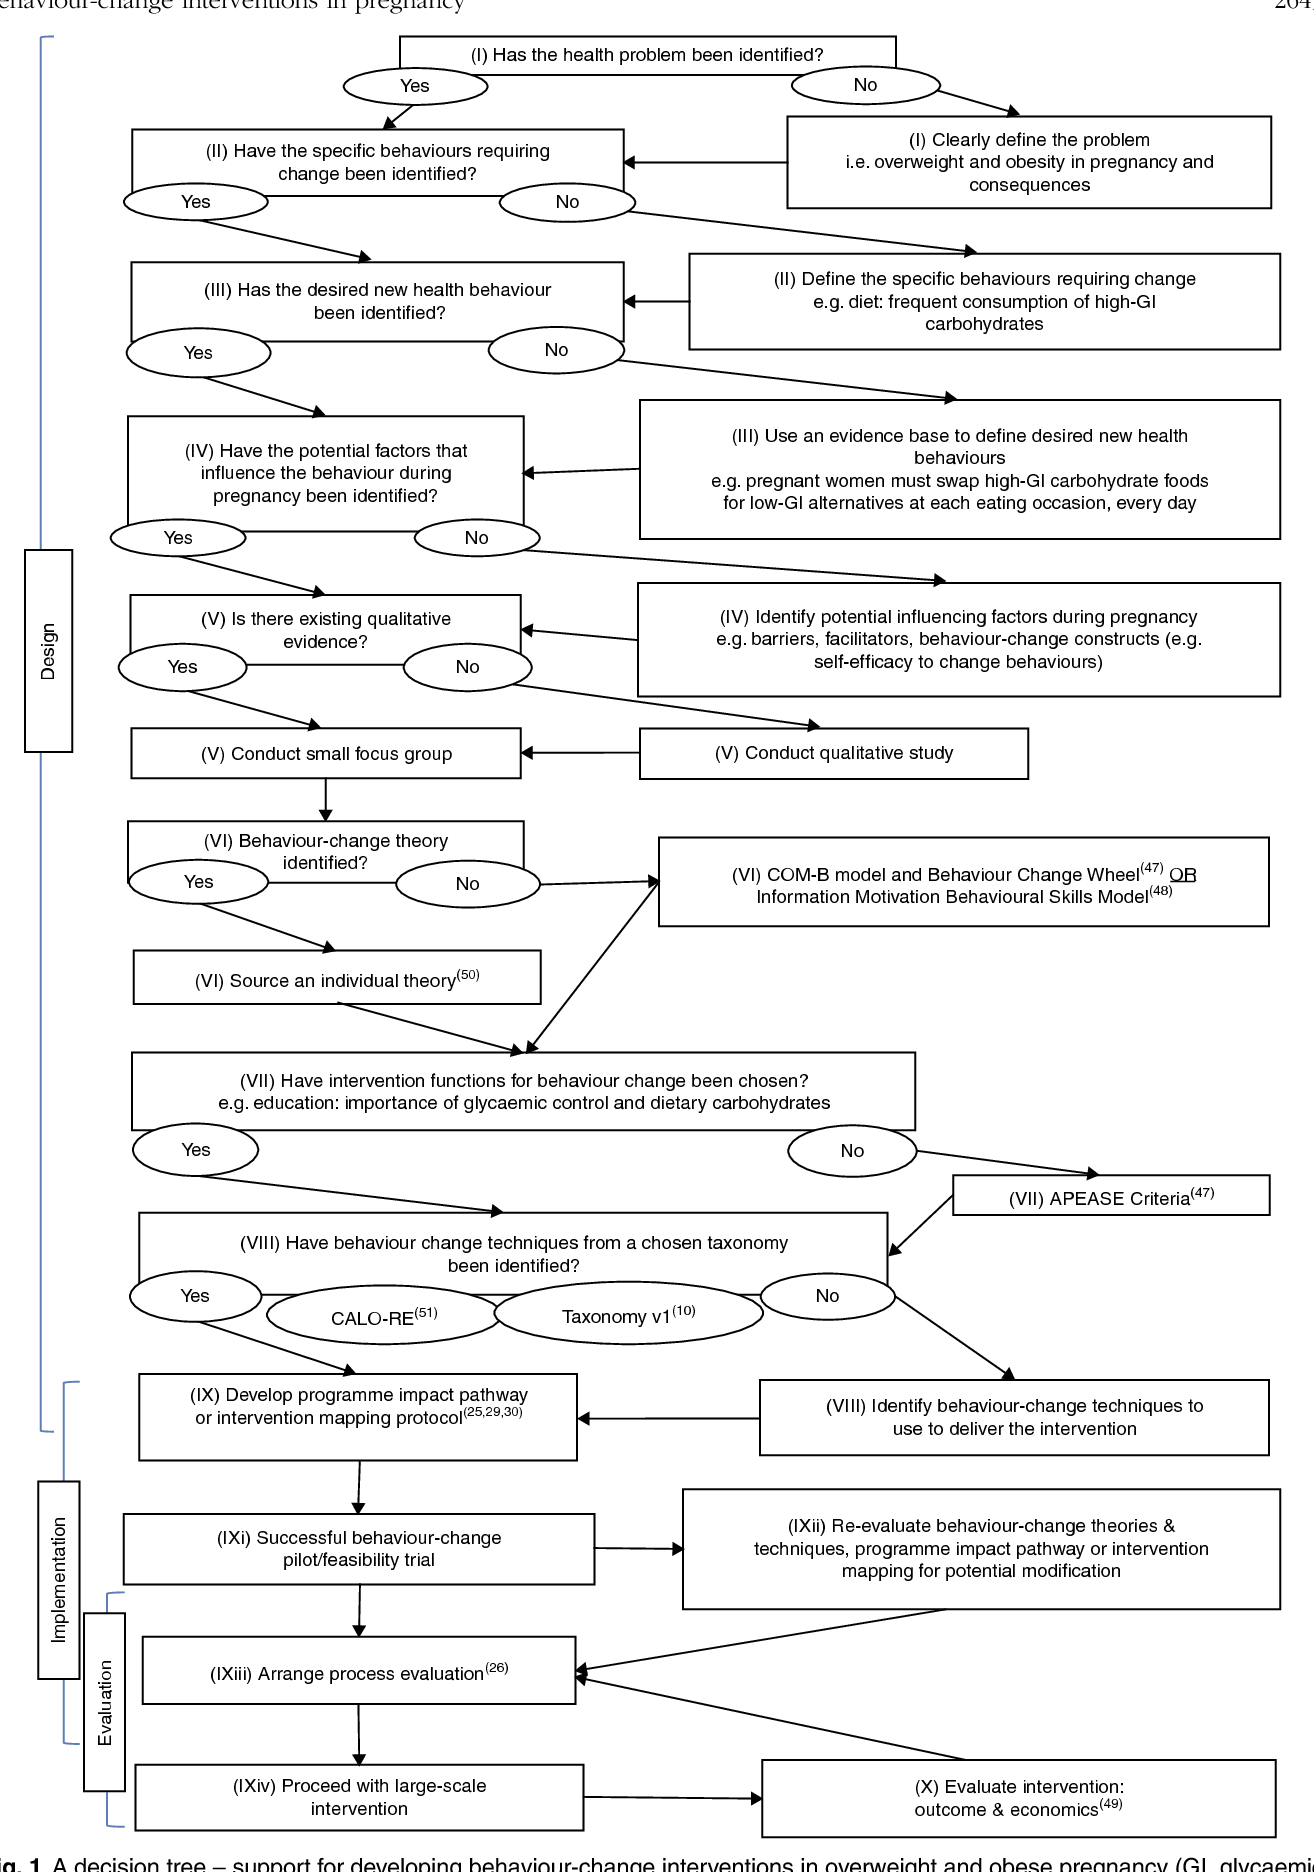 Pdf Behaviour Change In Overweight And Obese Pregnancy A Decision Tree To Support The Development Of Antenatal Lifestyle Interventions Semantic Scholar